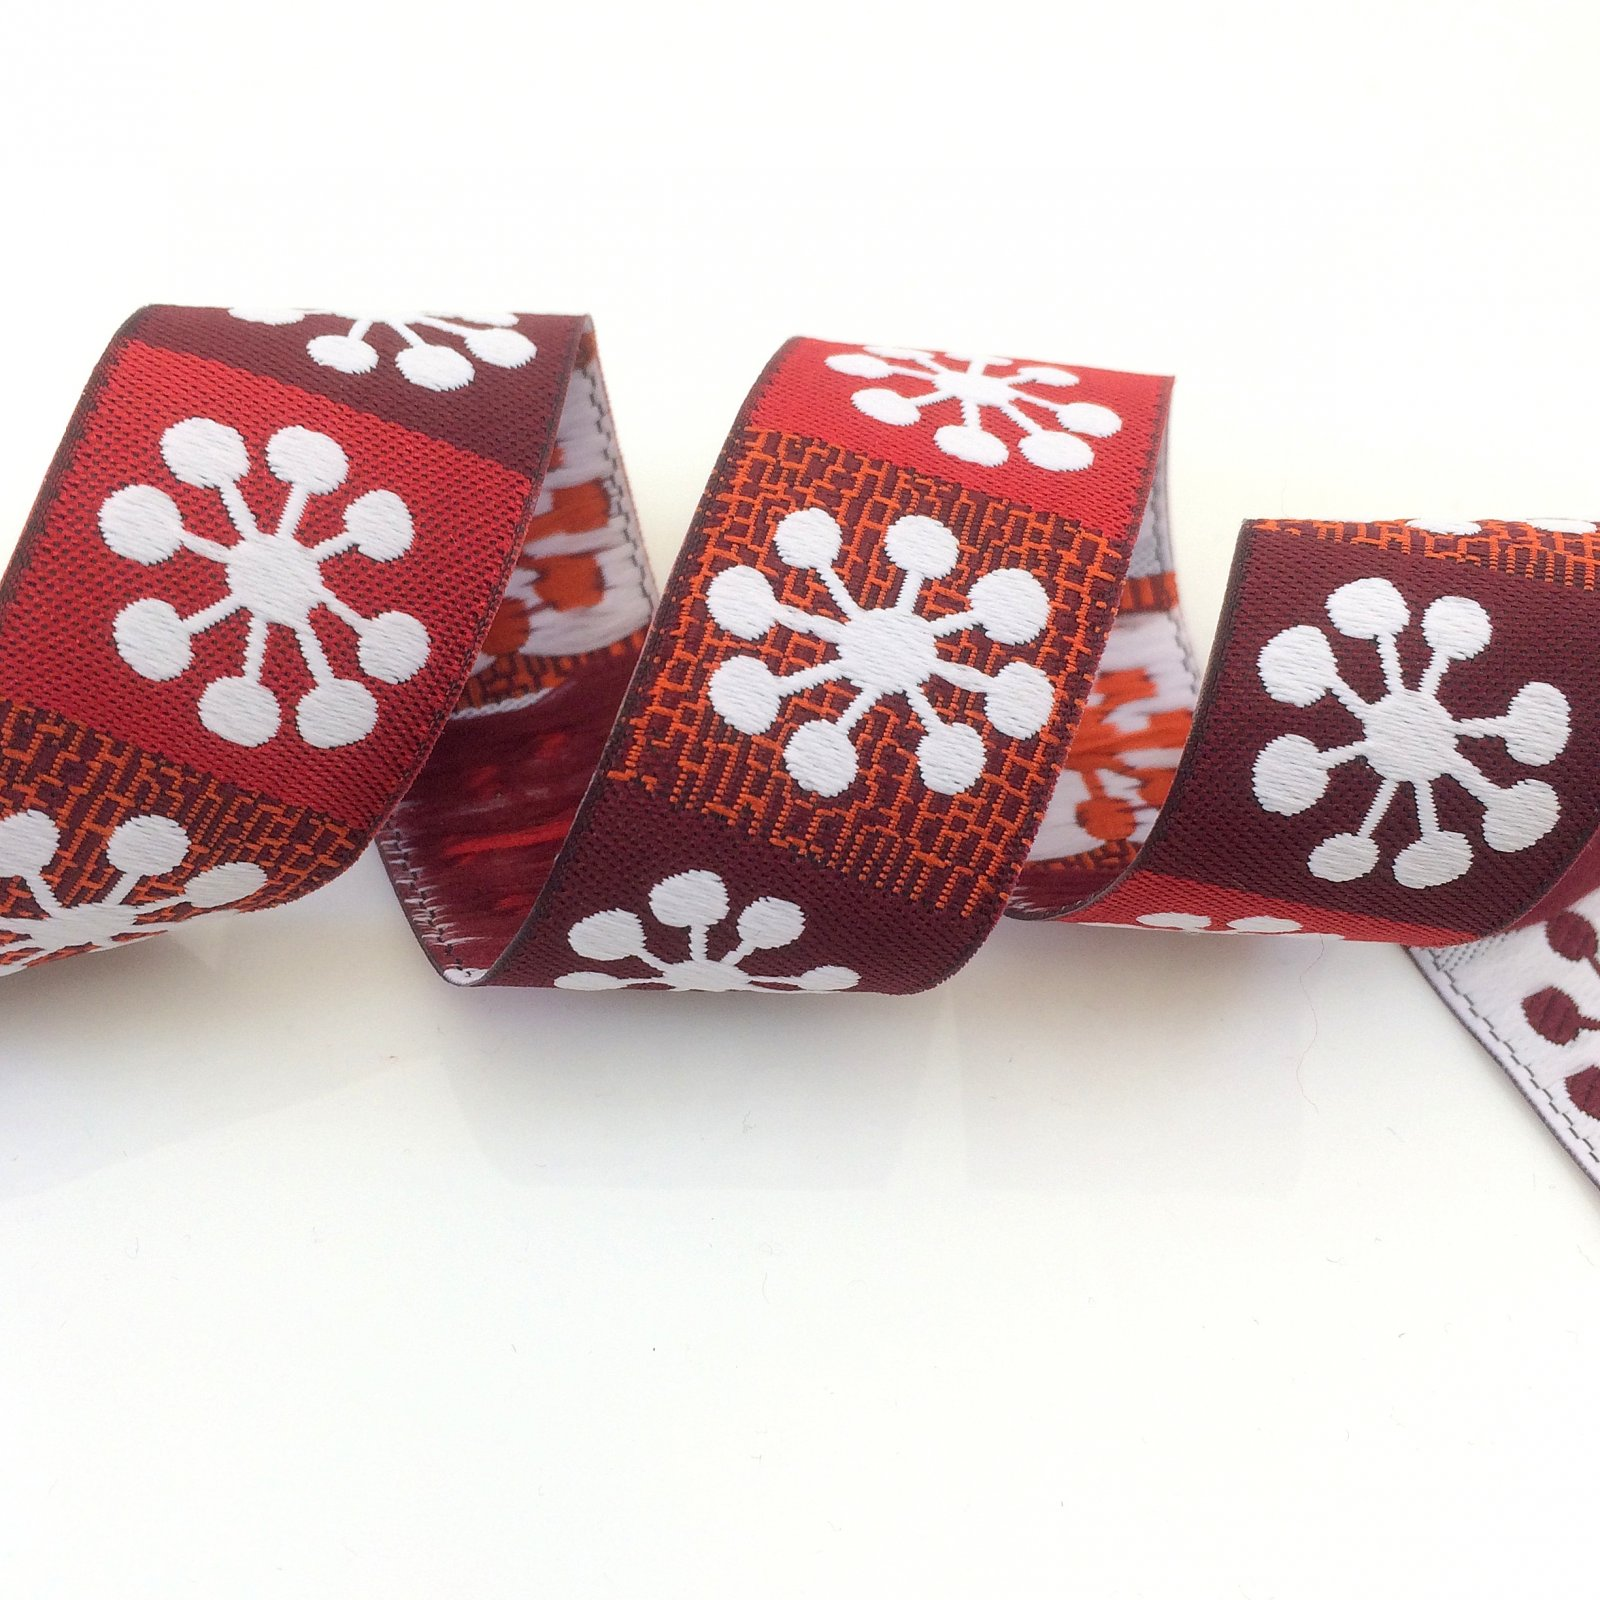 RENAISSANCE RIBBONS - BIG SNOWFLAKES 22MM - GRAY